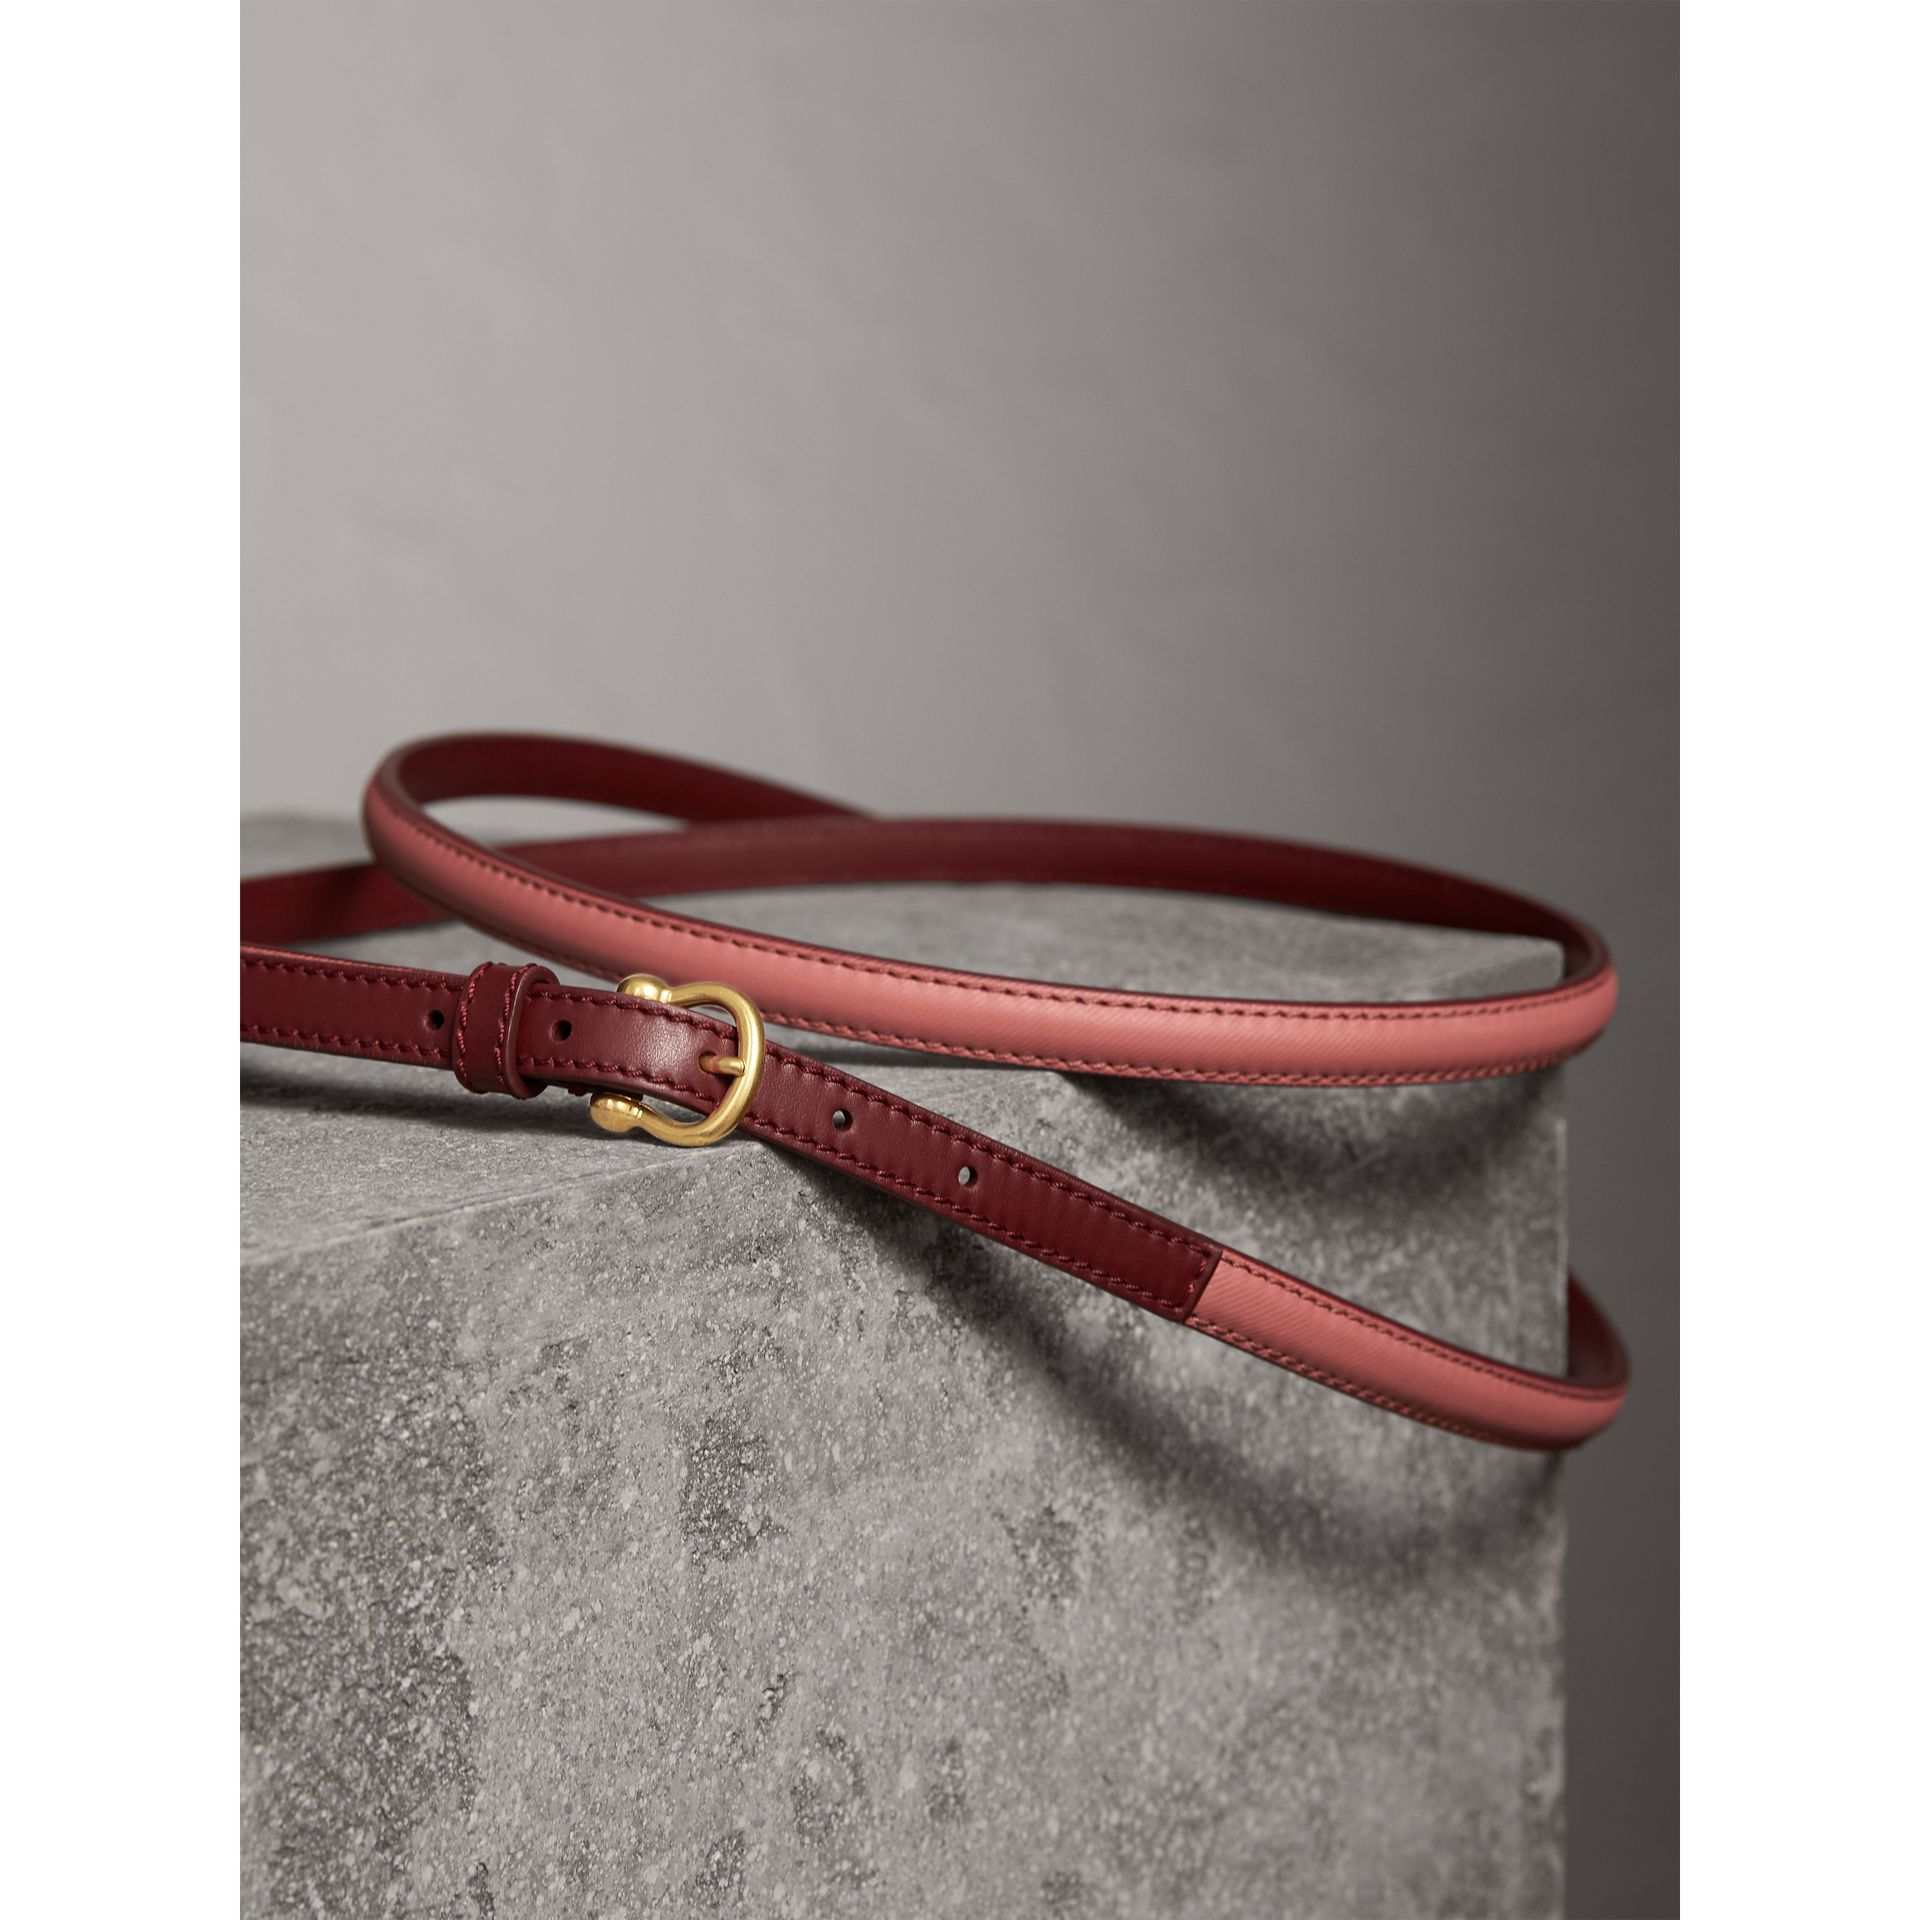 Two-tone Trench Leather Belt in Blossom Pink/ Antique Red - Women | Burberry - gallery image 2